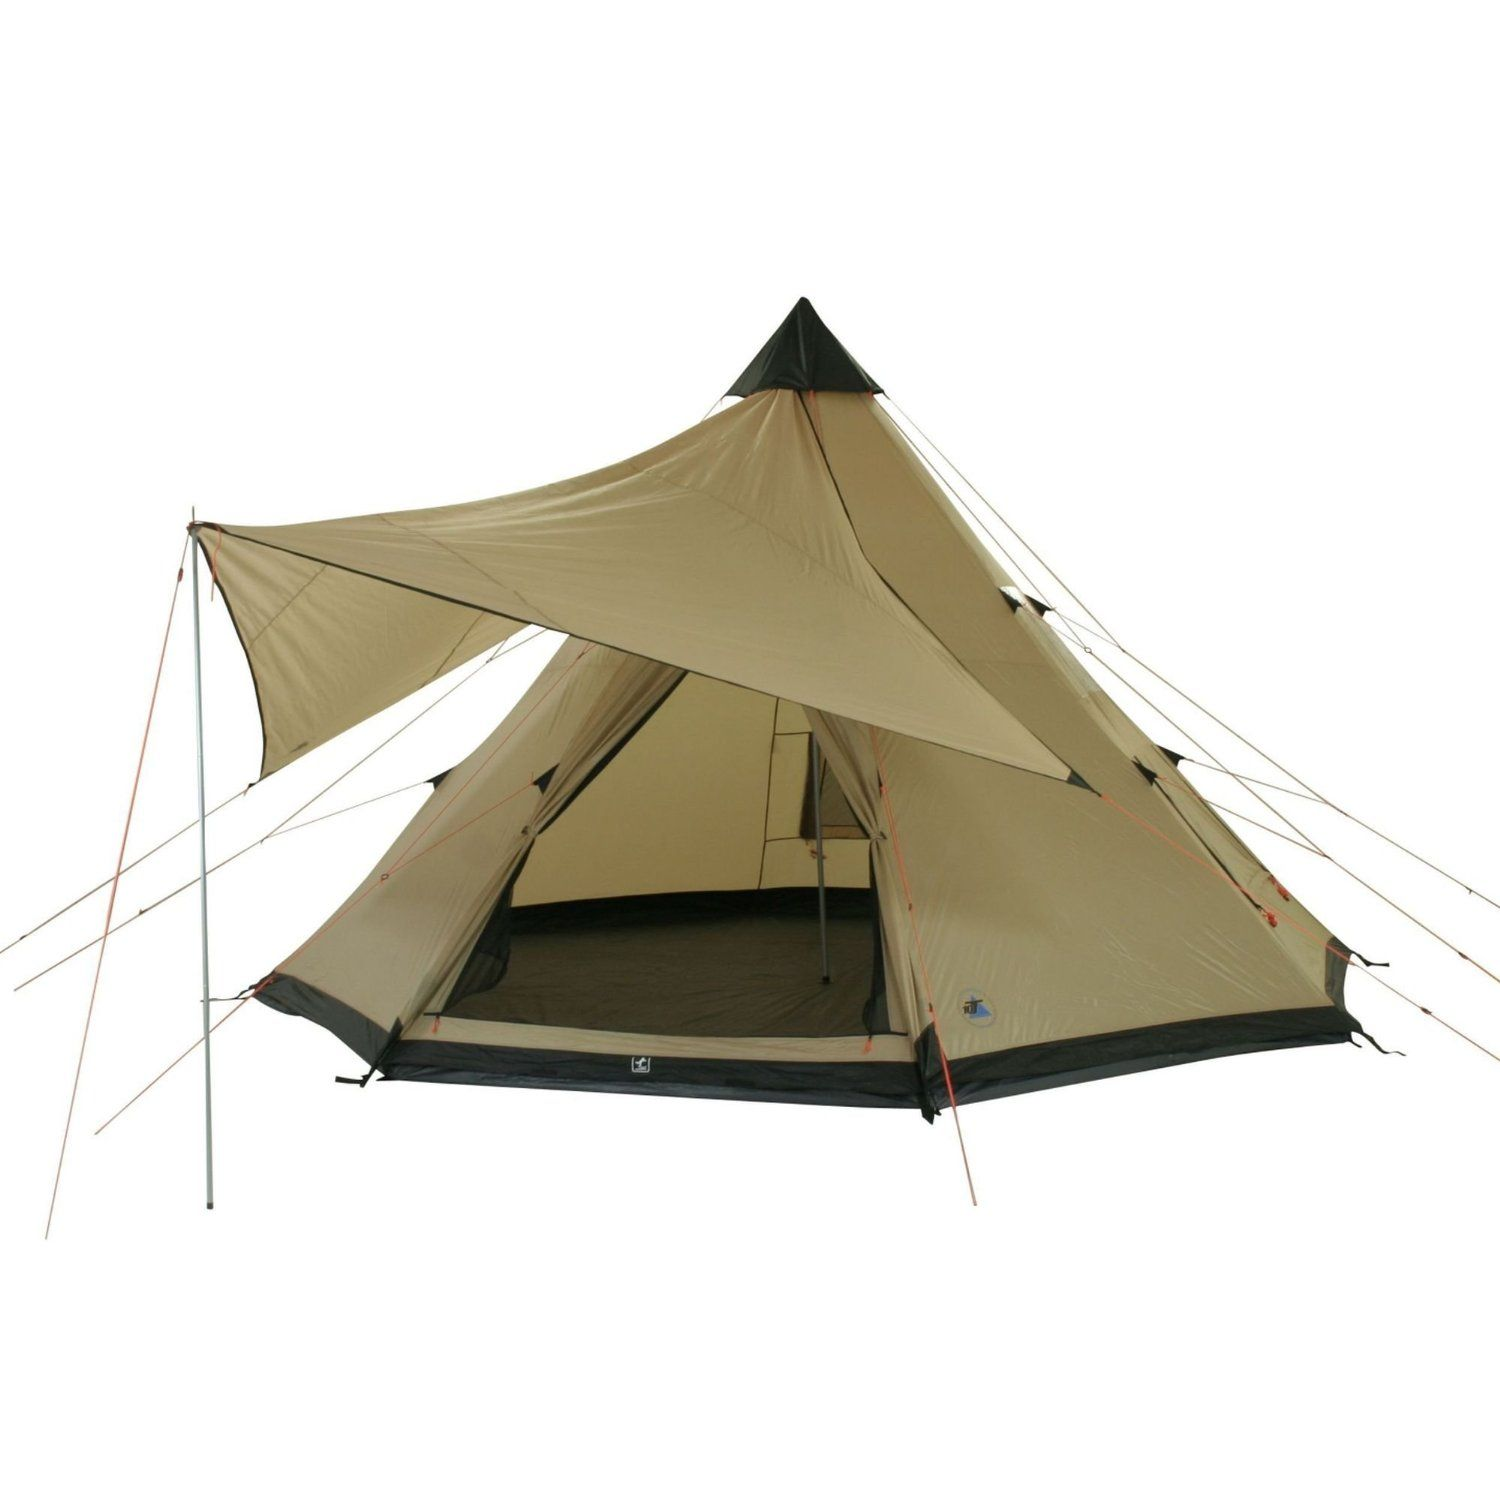 10T 8 person Tent SHOSHONE 400 HHu003d5000mm stiched groundsheet + shade sail Amazon  sc 1 st  Pinterest & 10T 8 person Tent SHOSHONE 400 HHu003d5000mm stiched groundsheet + ...